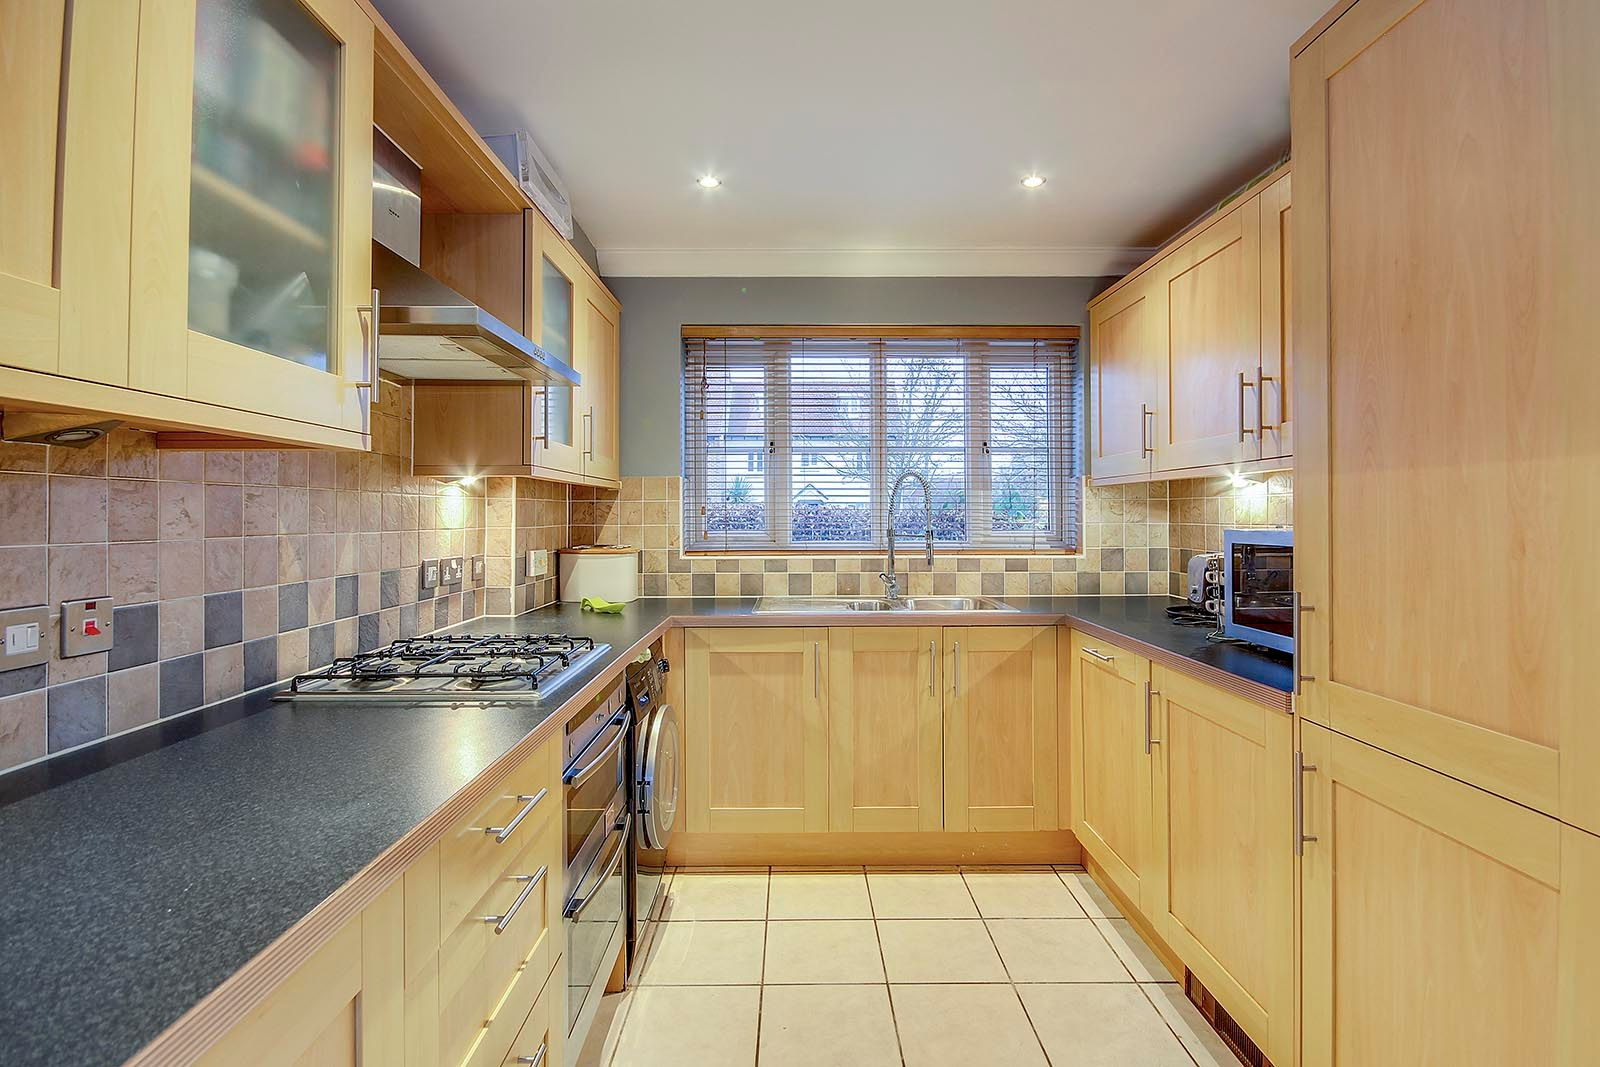 4 bed house for sale in Lucksfield Way  - Property Image 2